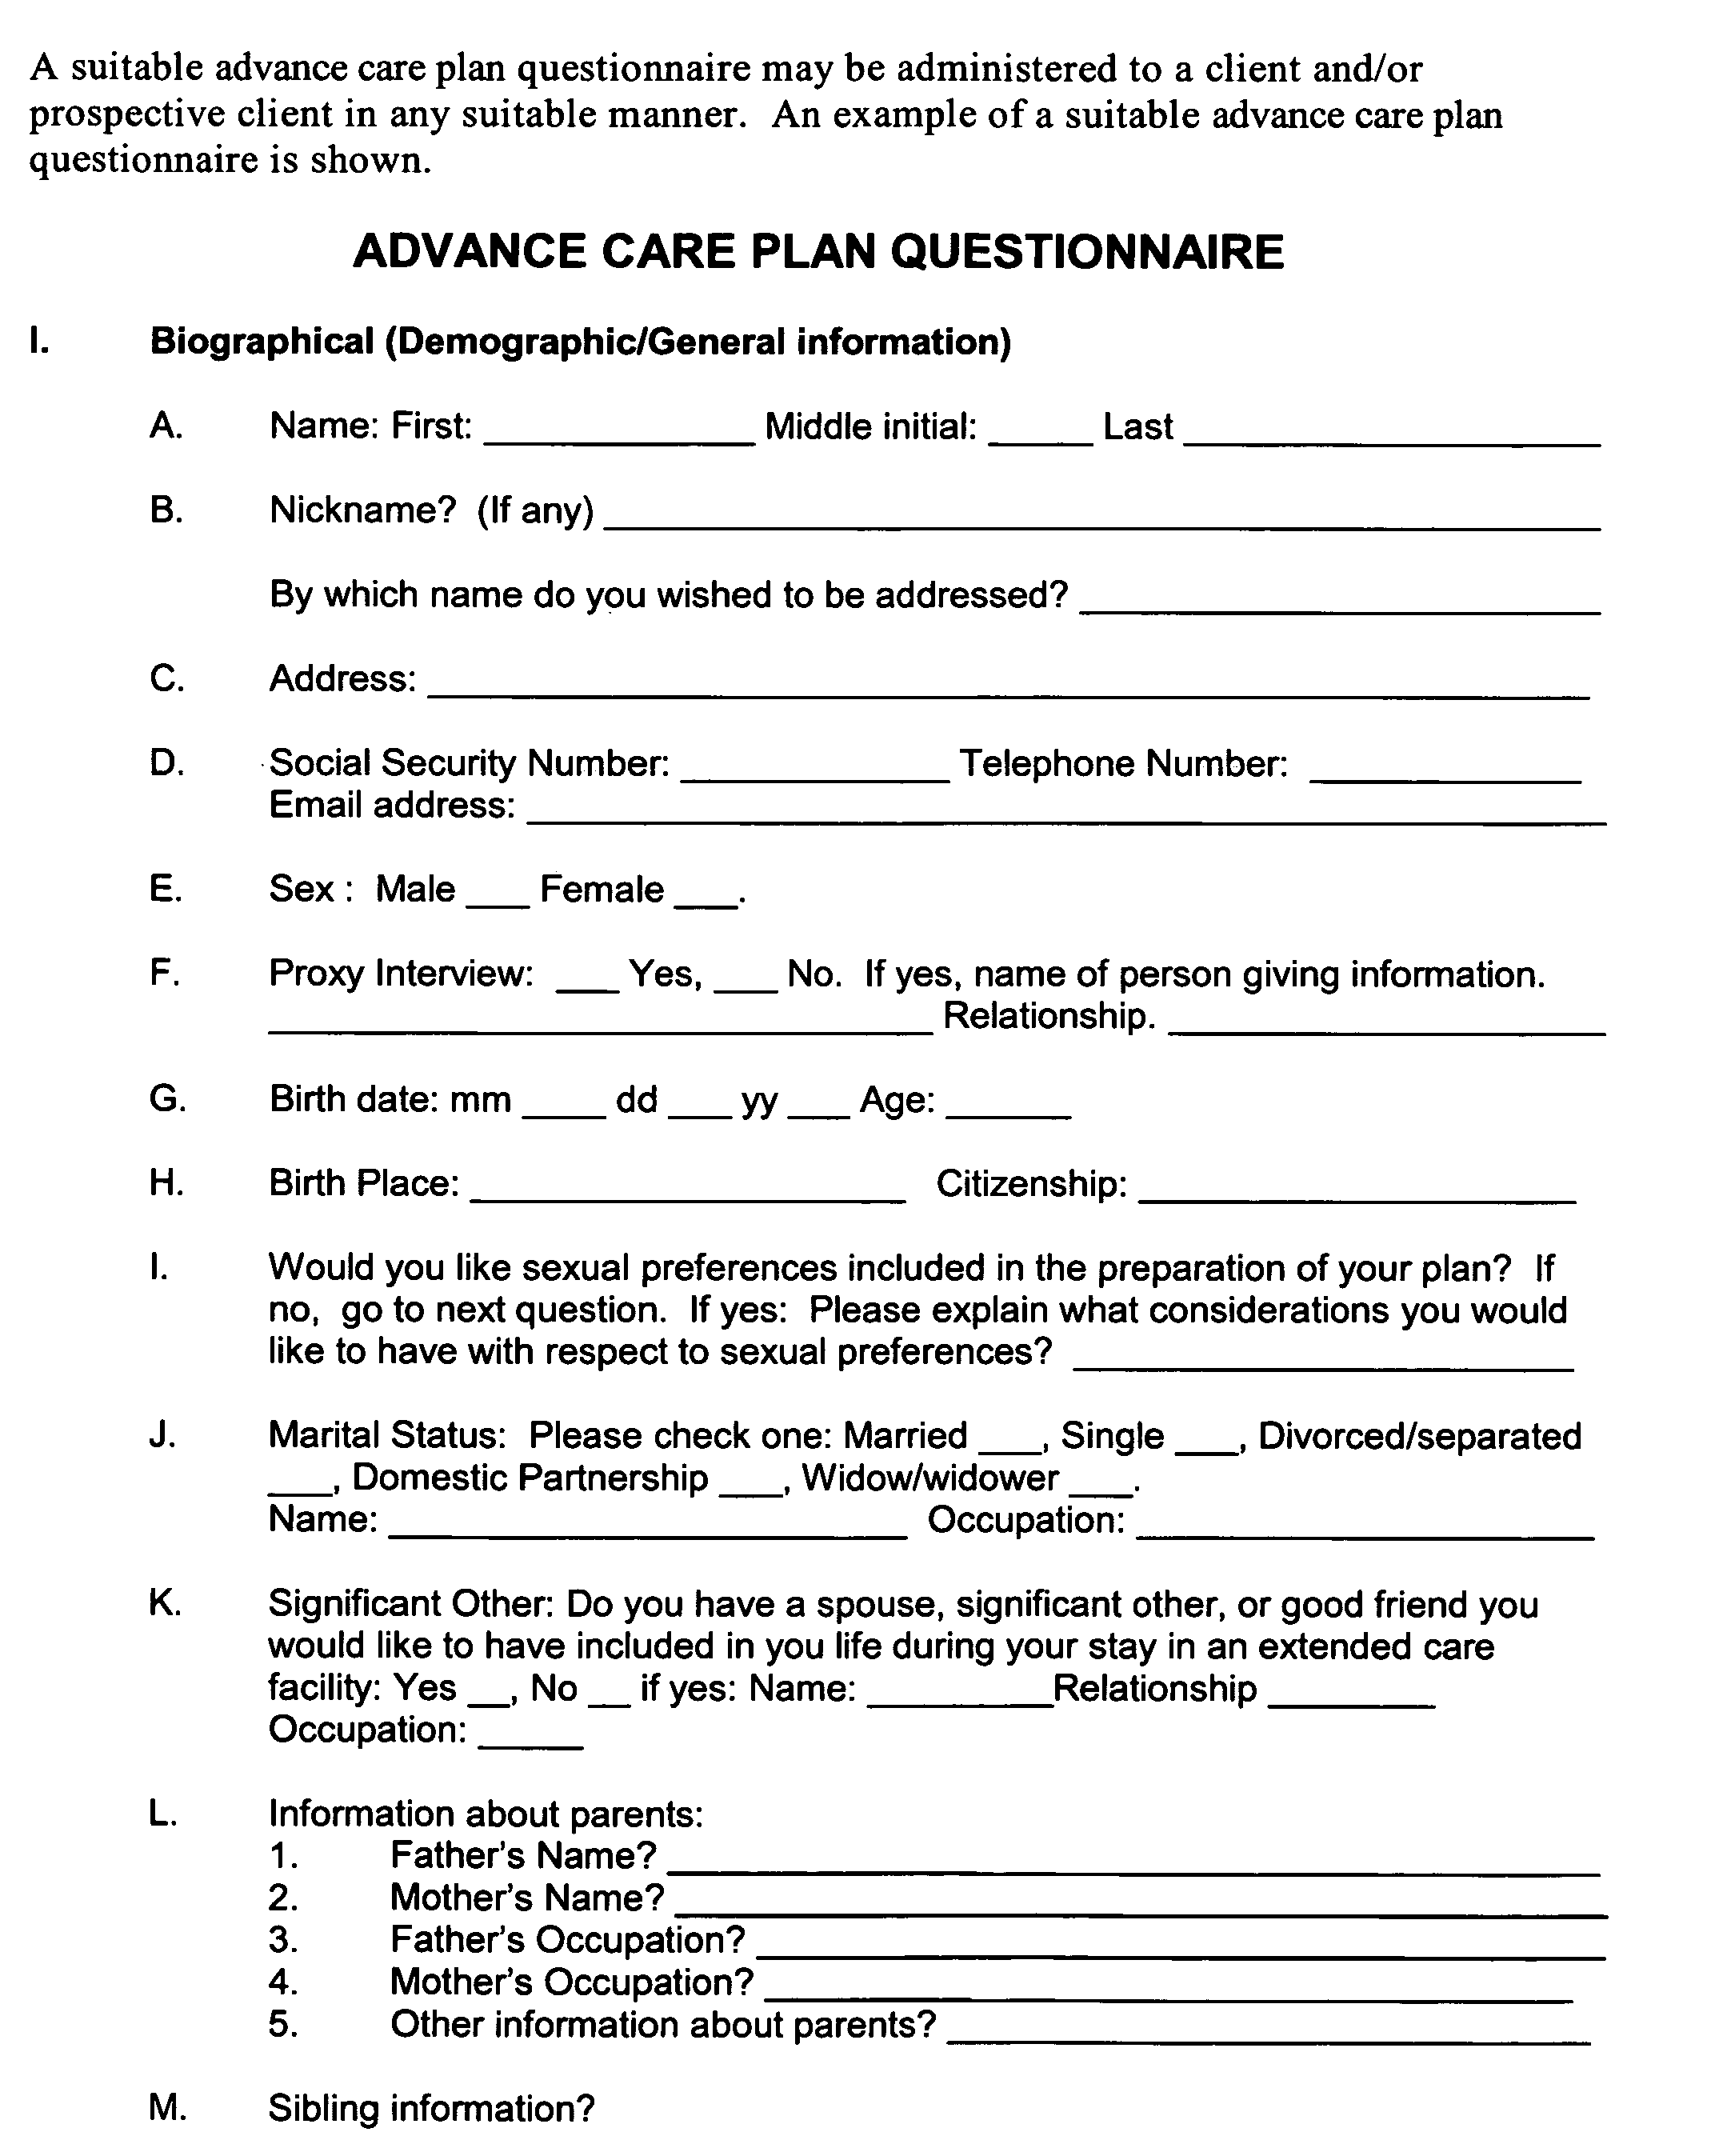 advance care plan template - us20050202383a1 advance care plan google patents